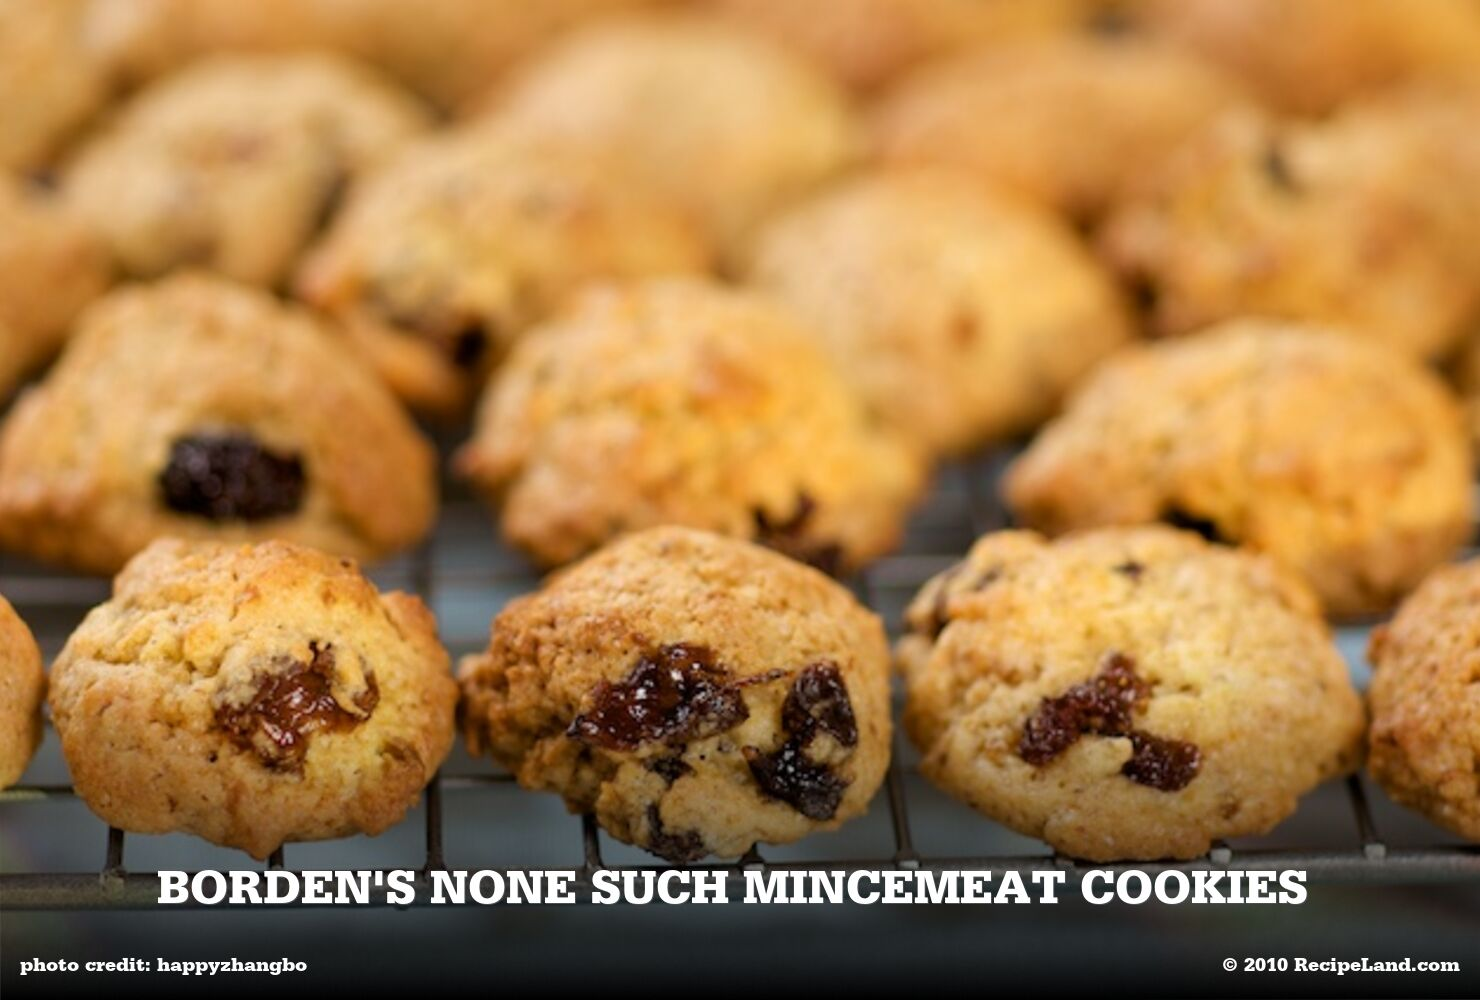 Borden's None Such Mincemeat Cookies